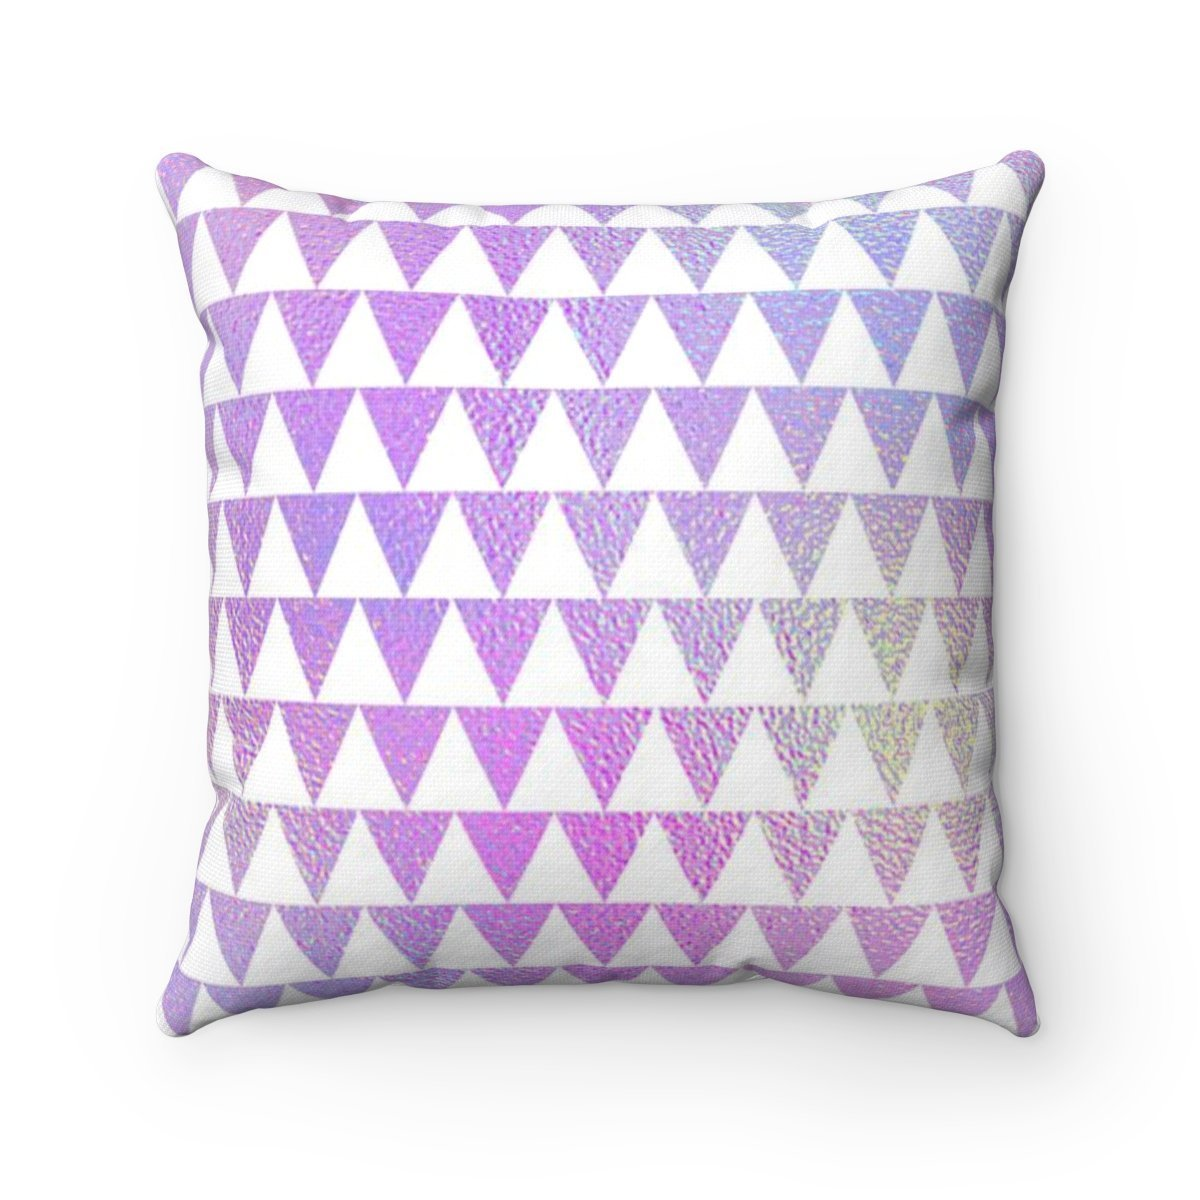 Hologram Triangle geometric decorative cushion cover-Home Decor - Decorative Accents - Pillows & Throws - Decorative Pillows-Maison d'Elite-14x14-Très Elite